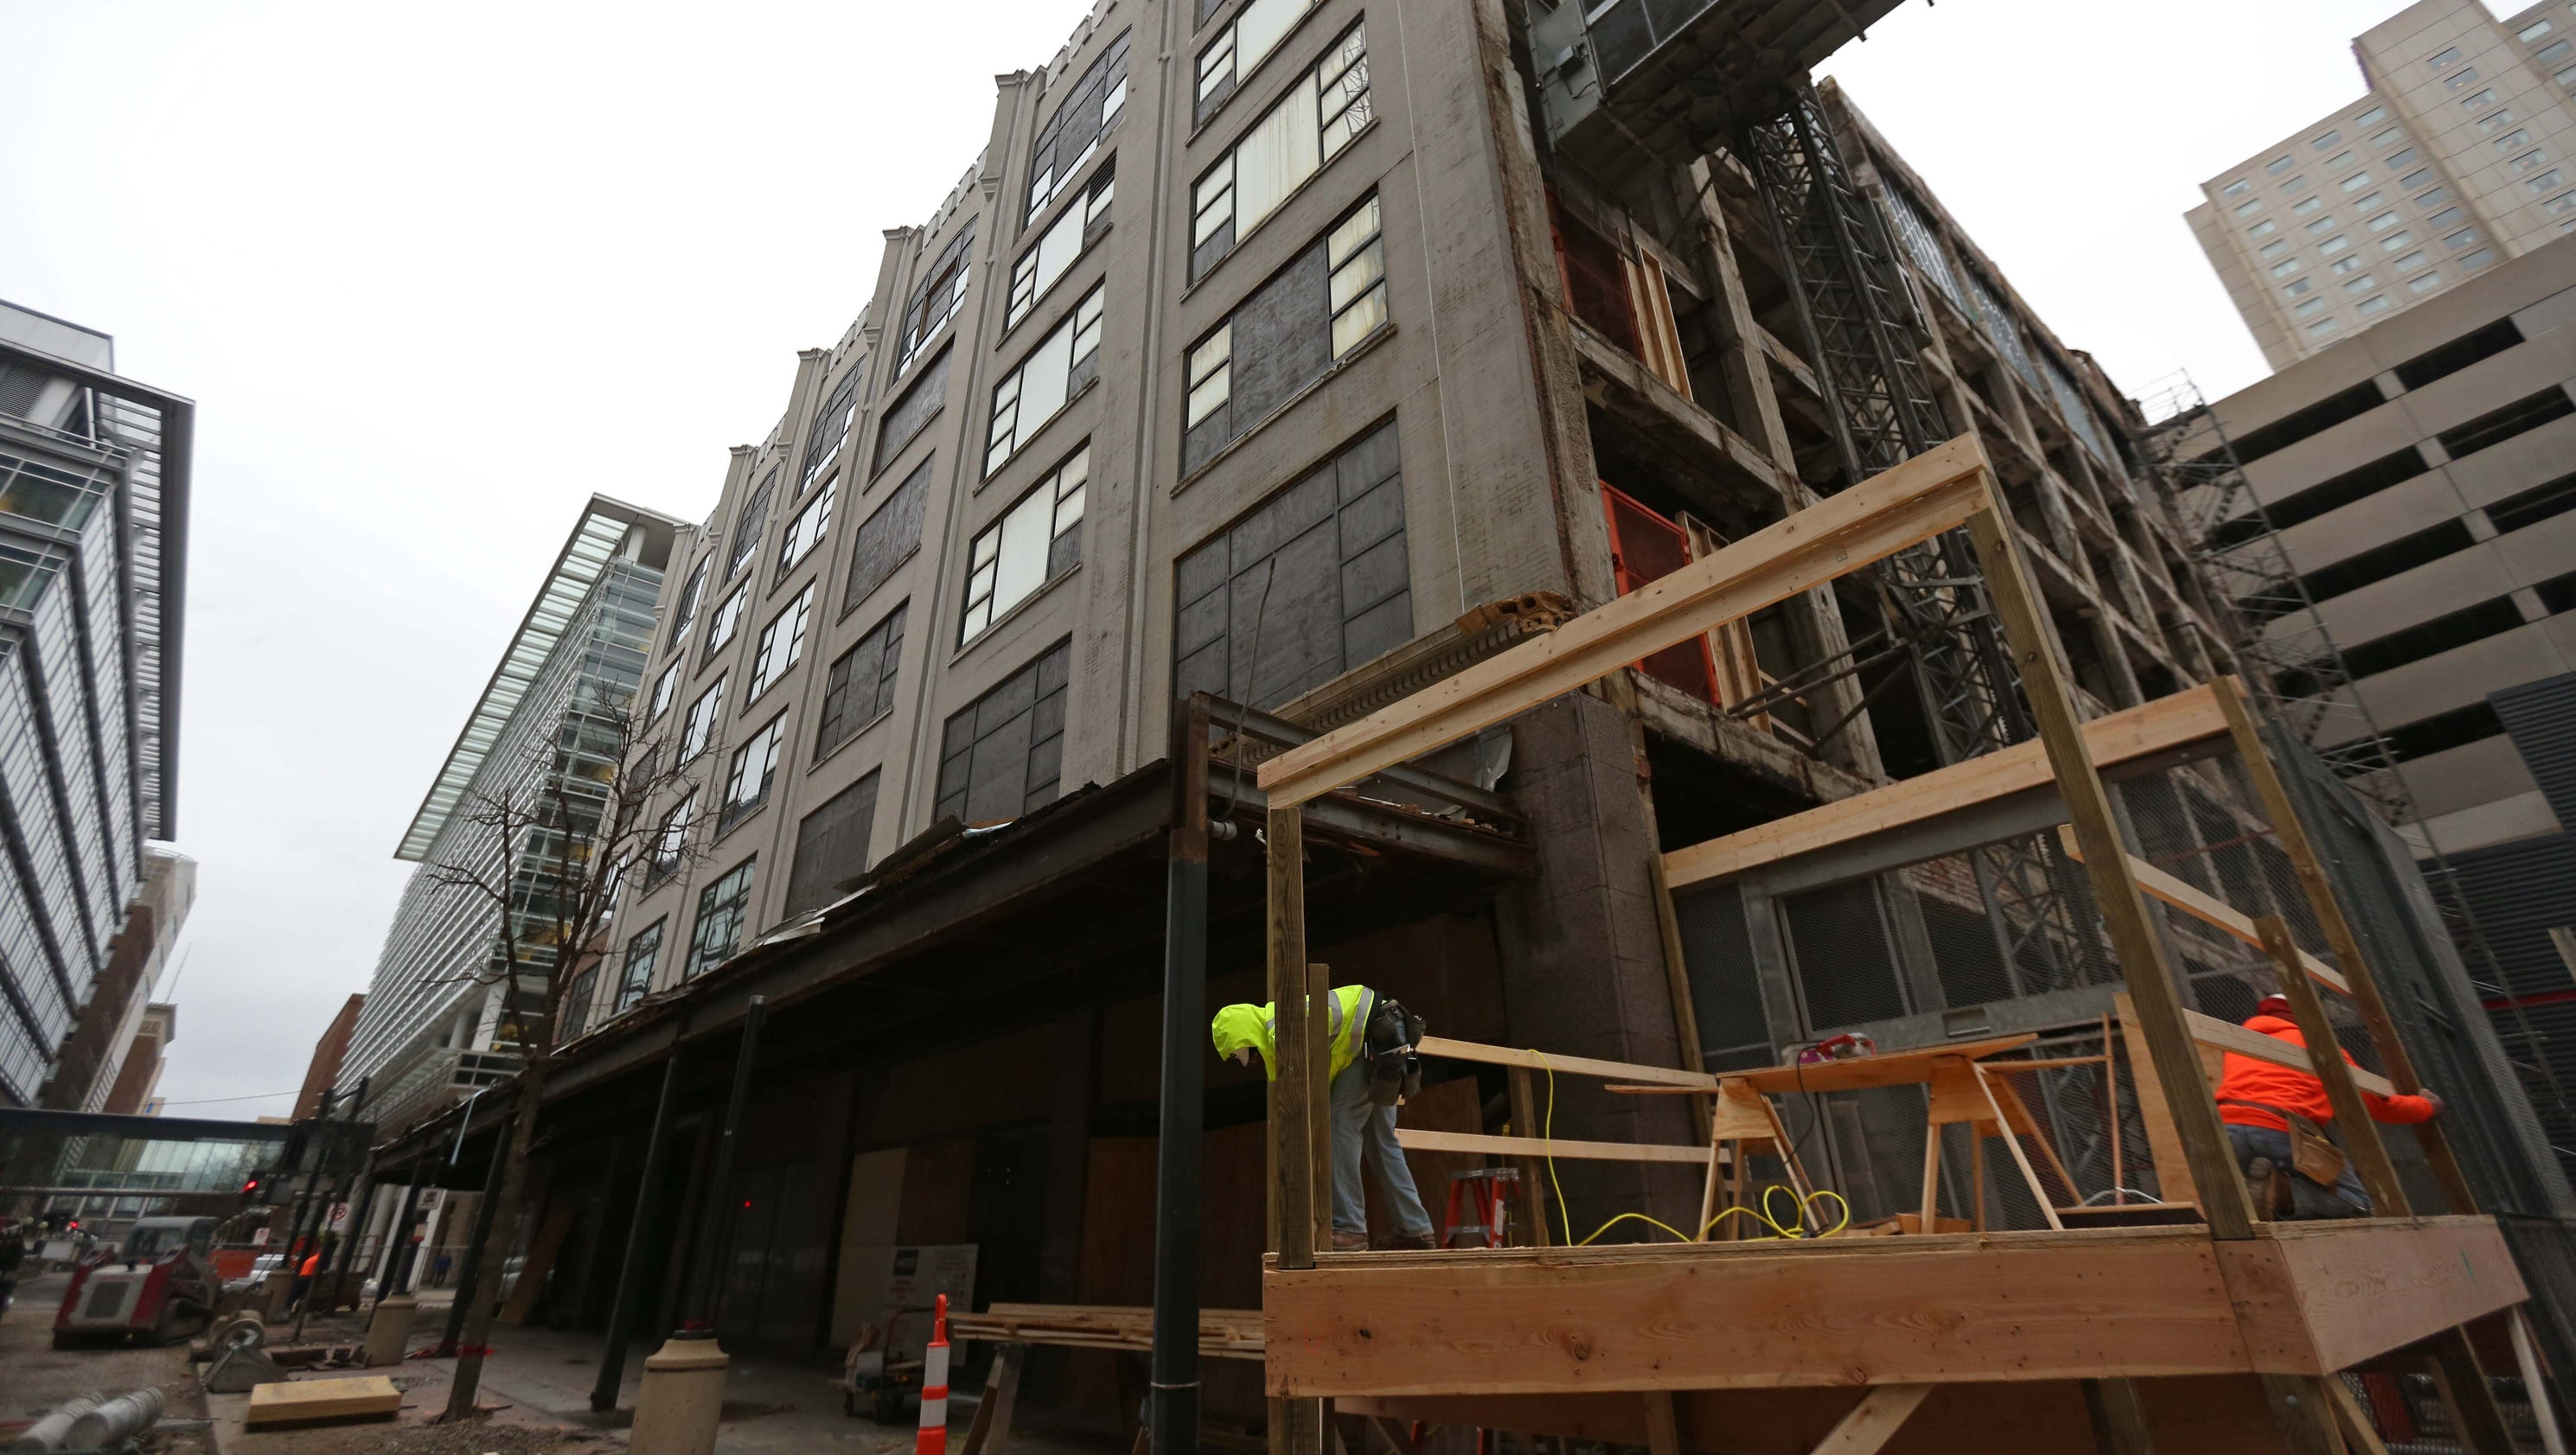 10 photos inside the wilkins building for Construction local commercial